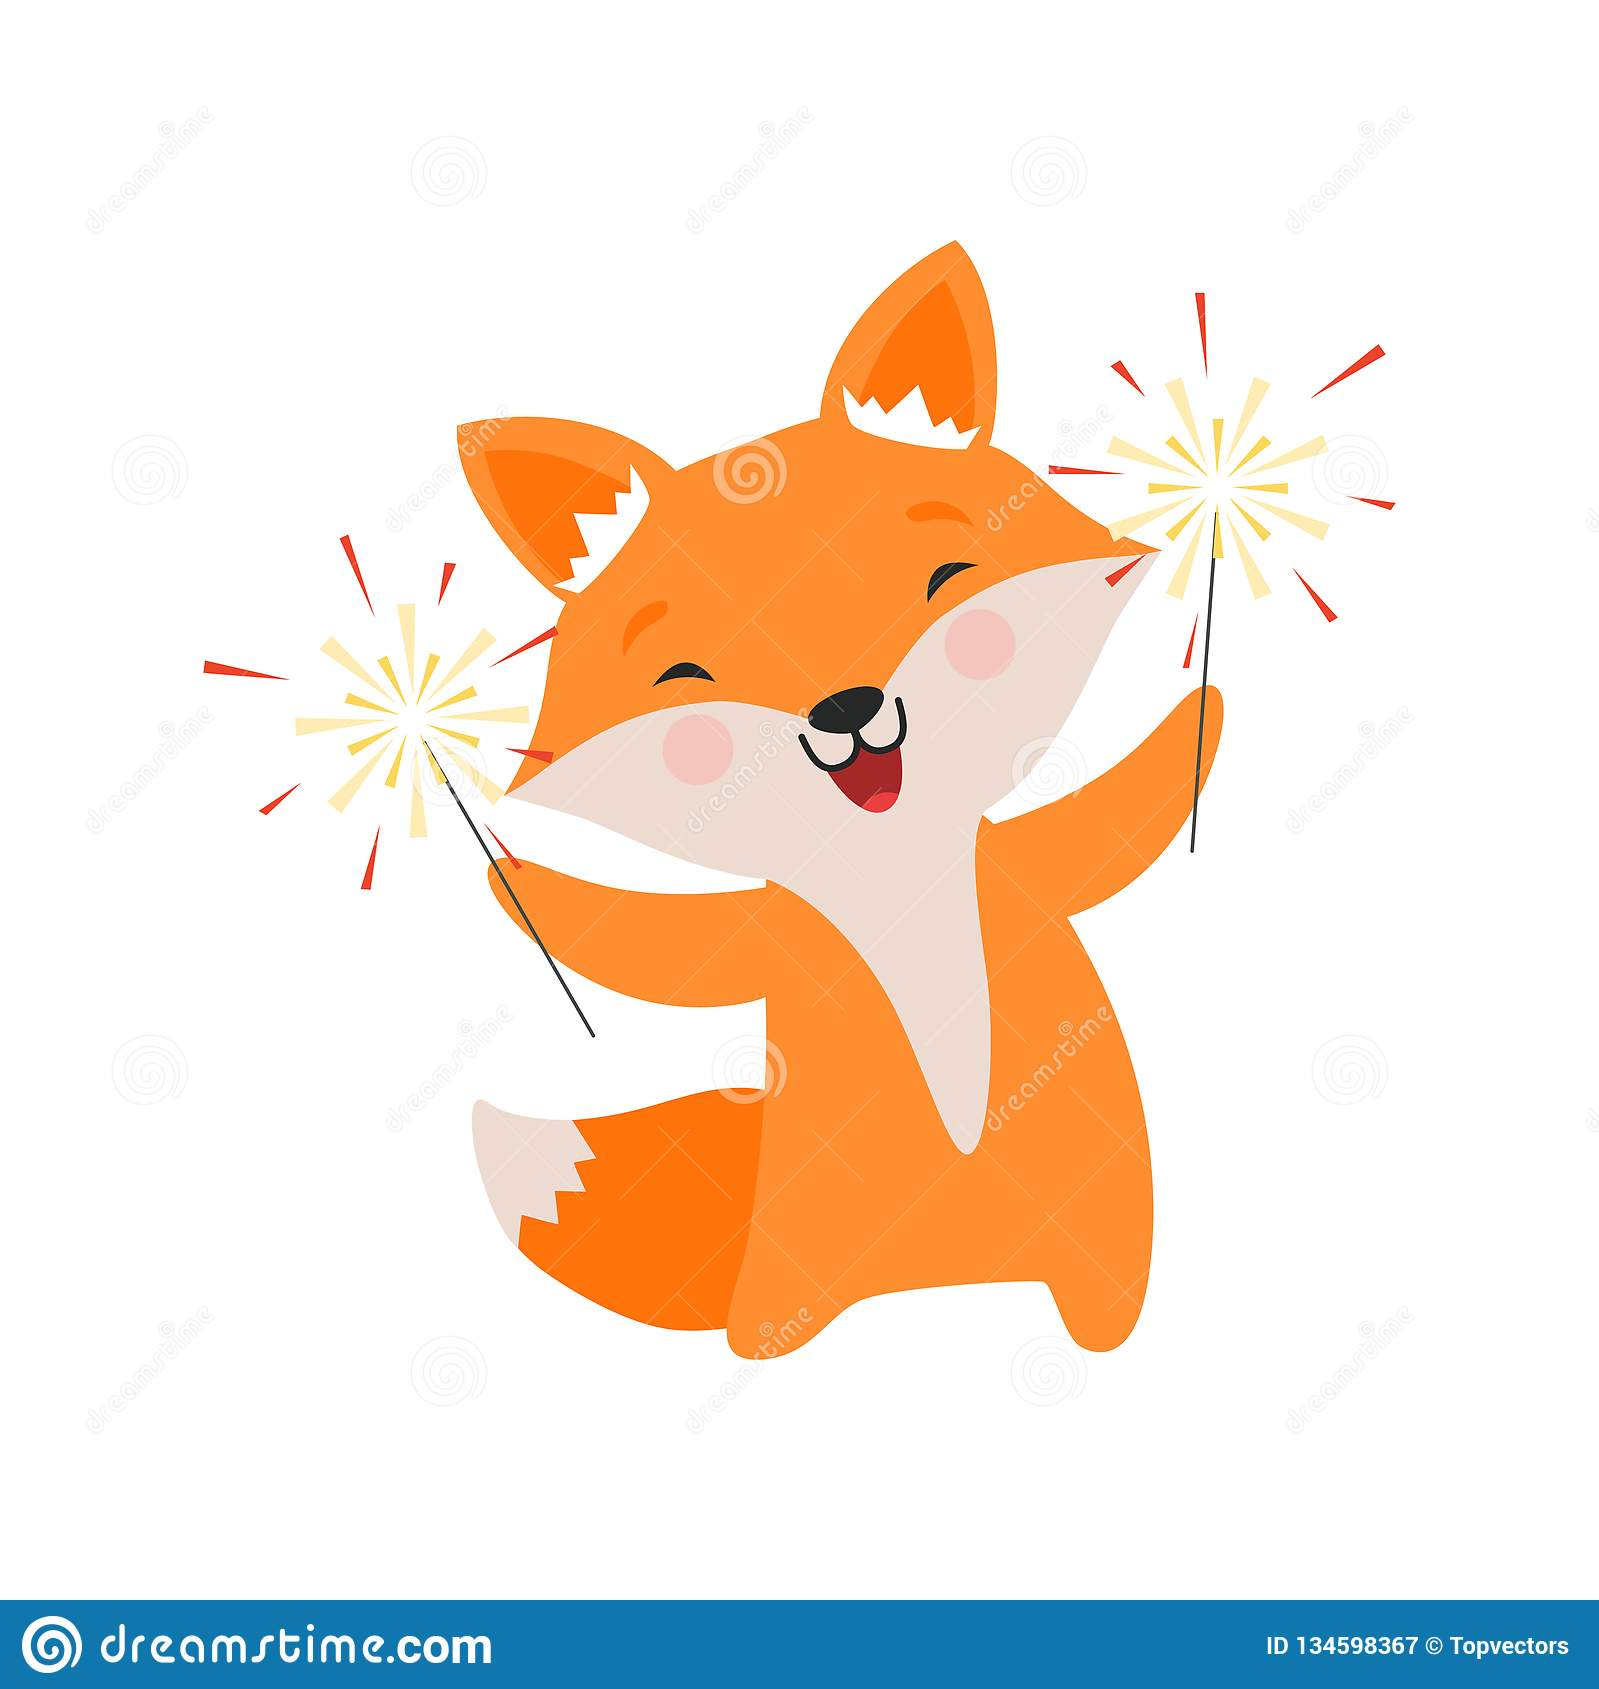 Cute Fox Celebrating With Sparklers Lovely Cartoon Animal Character Design Template Can Be Used For New Year Or Stock Vector Illustration Of Celebration Childish 134598367